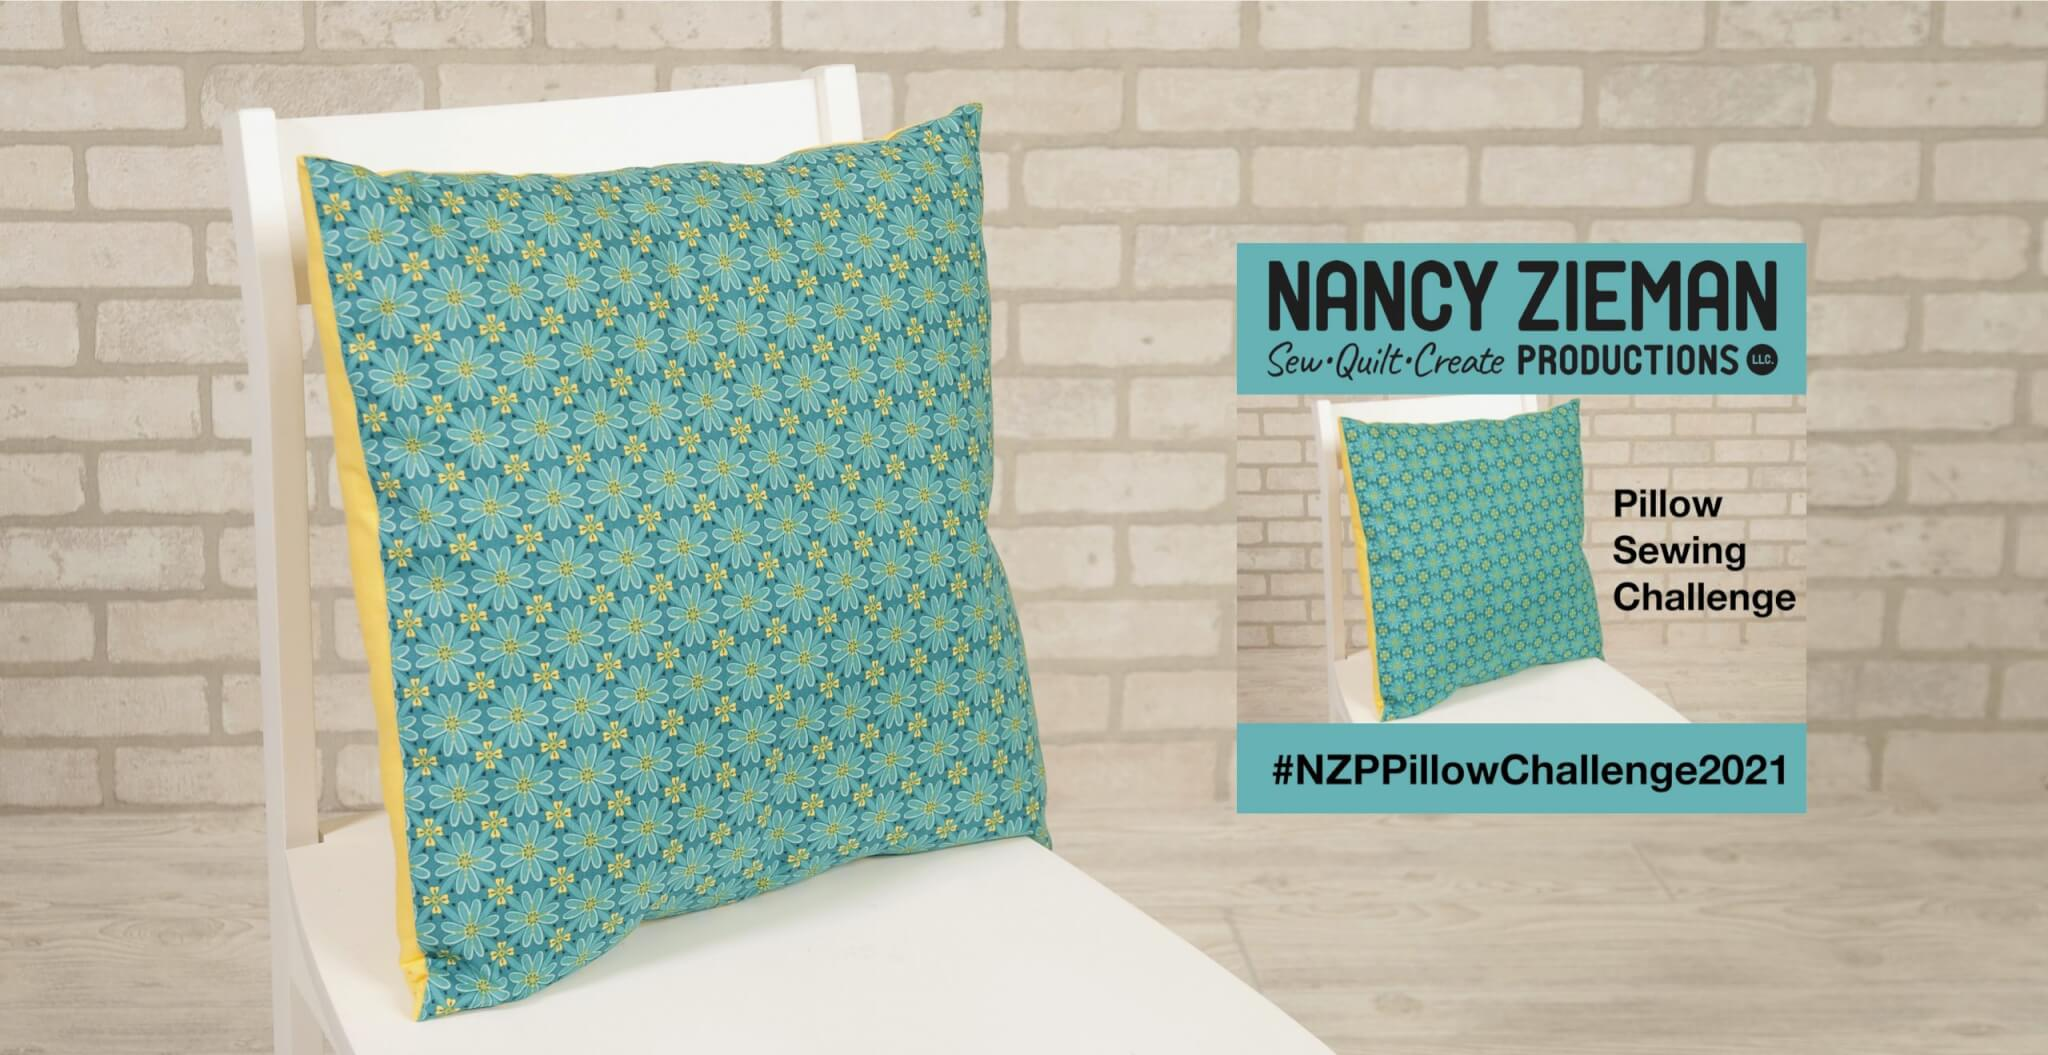 Team NZP Announces 2021 Pillow Sewing Challenge at the Nancy Zieman Productions Blog